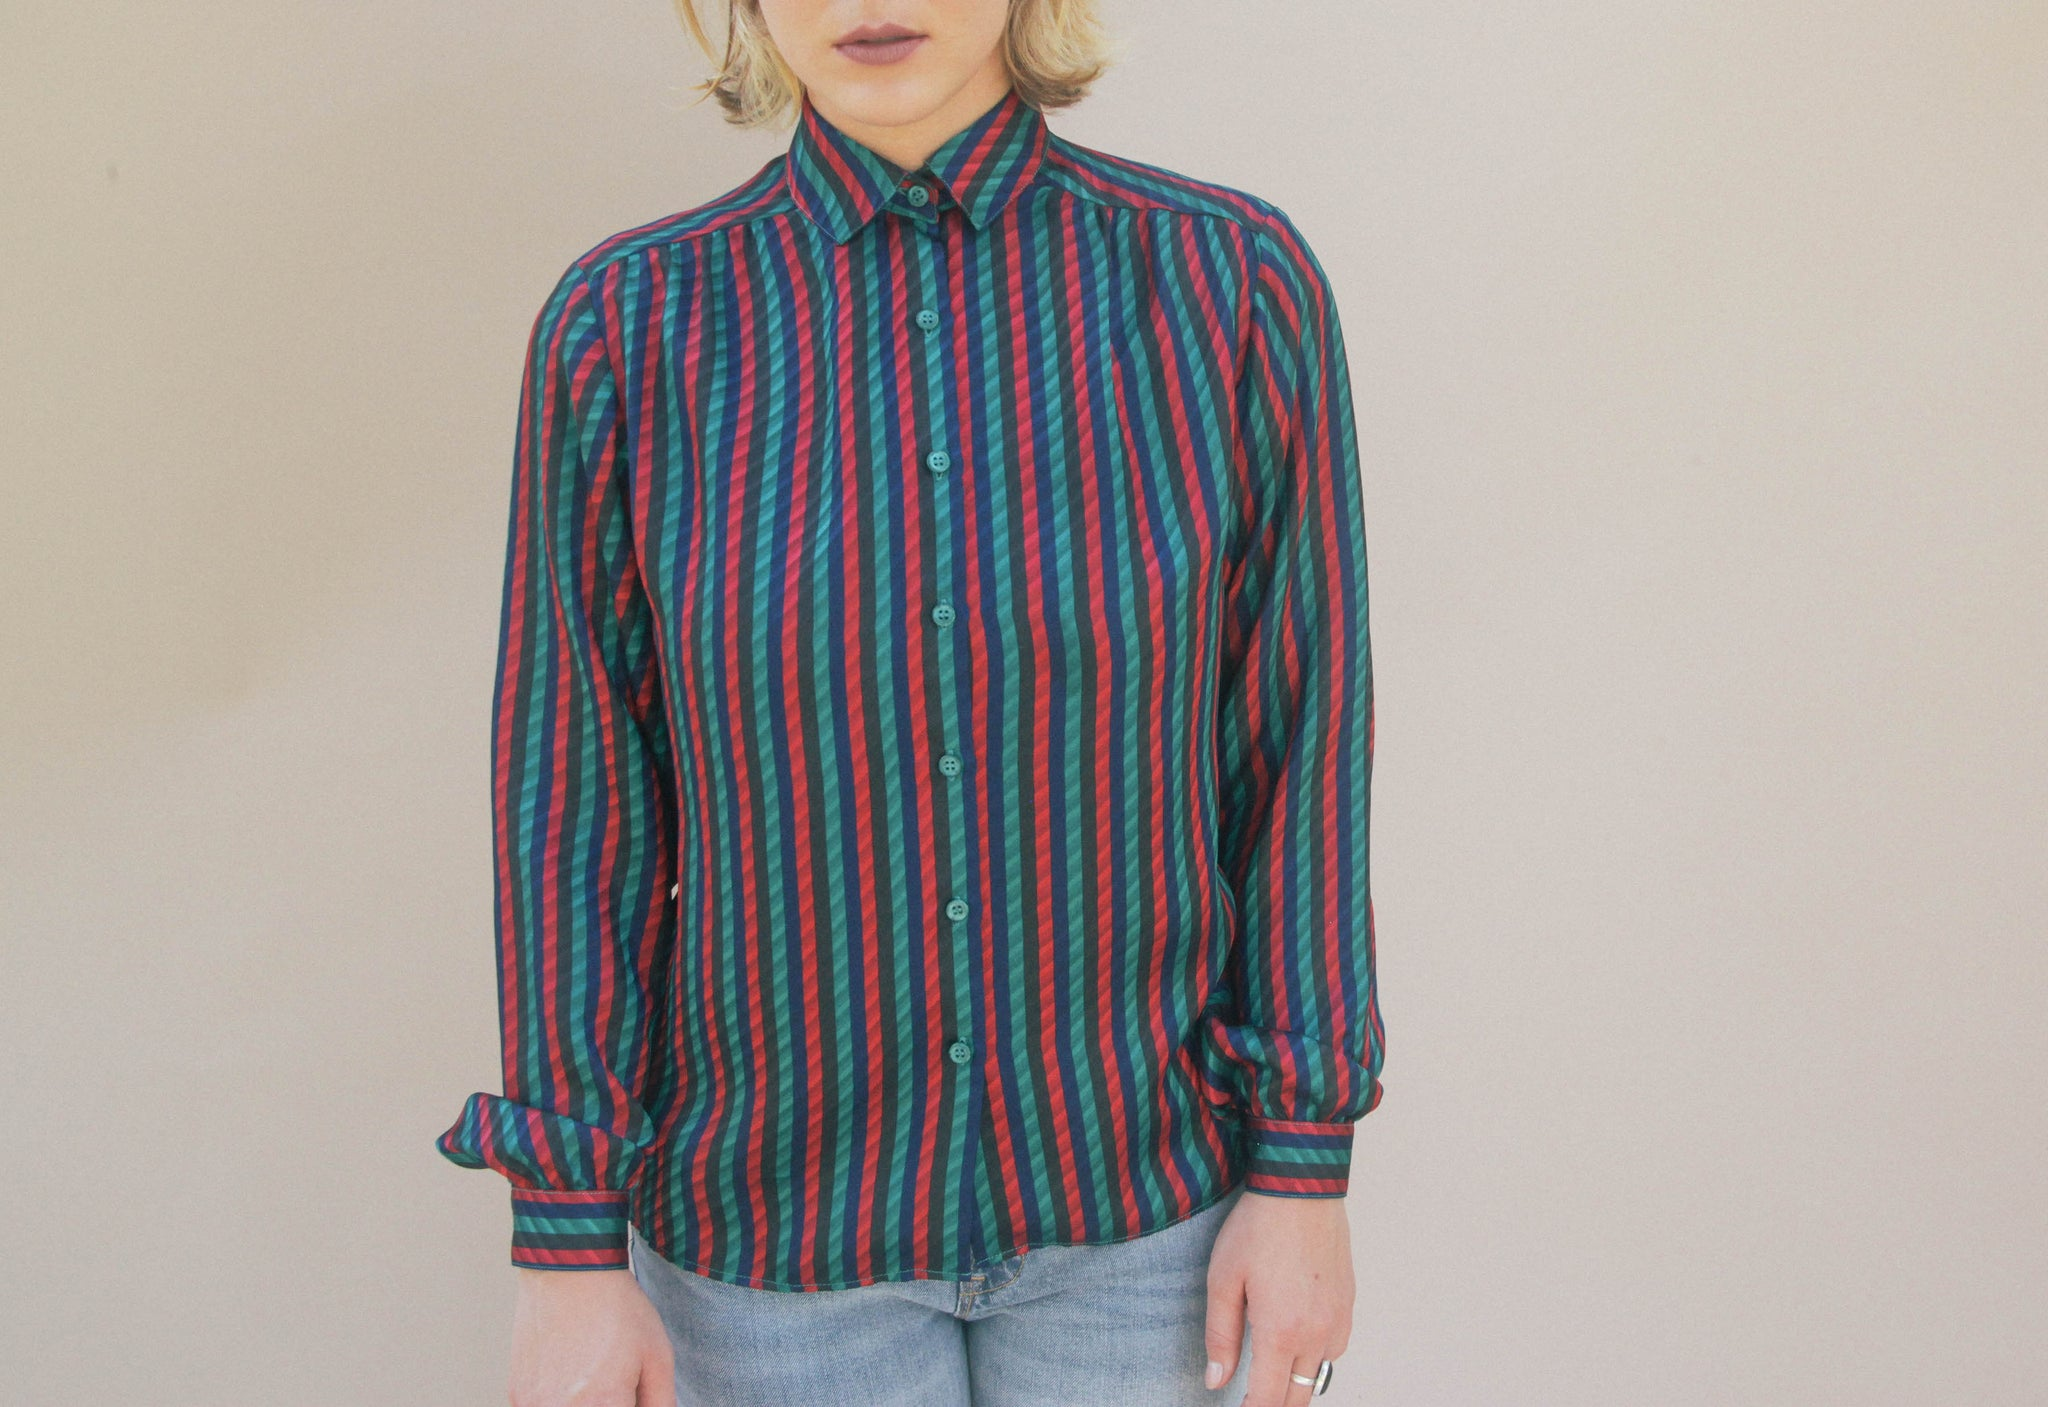 90's Striped Blouse